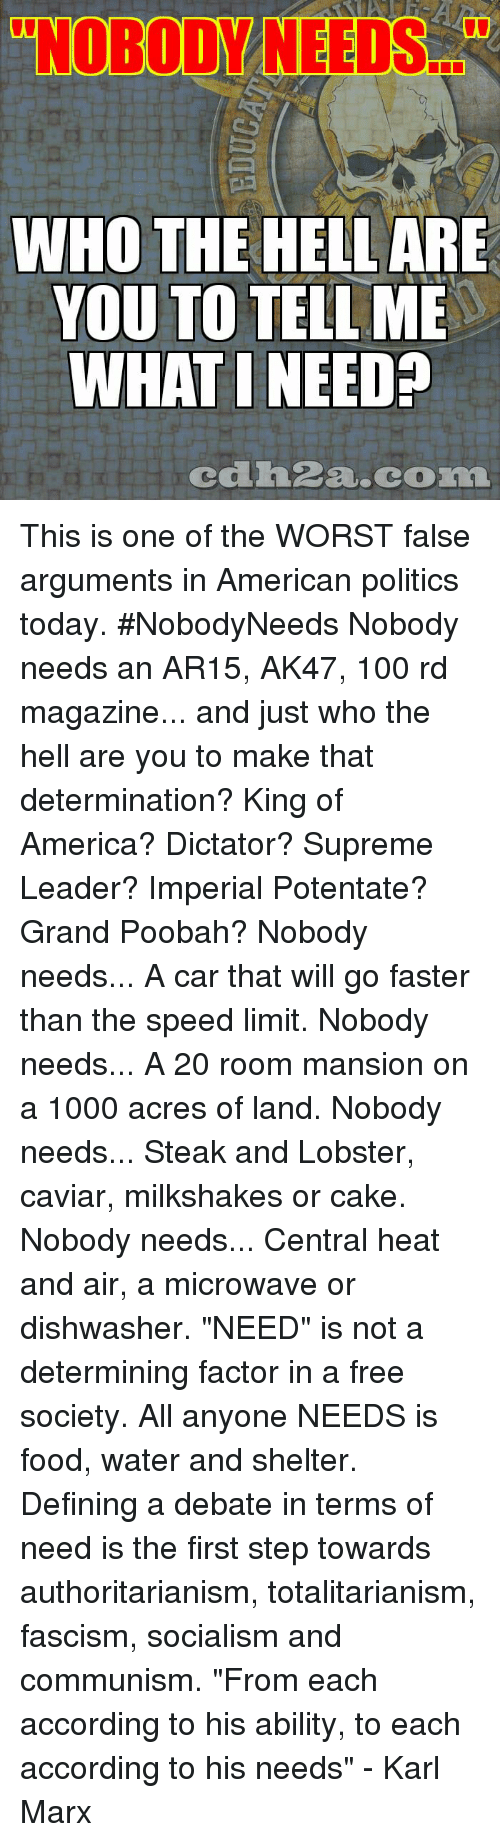 "America, Anaconda, and Food: ""NOBODY NEEDS.  WHO THE HELL ARE  YOU TO TELL ME  WHAT I NEED  cdh2a.com This is one of the WORST false arguments in American politics today. #NobodyNeeds Nobody needs an AR15, AK47, 100 rd magazine... and just who the hell are you to make that determination? King of America? Dictator? Supreme Leader? Imperial Potentate? Grand Poobah?  Nobody needs... A car that will go faster than the speed limit. Nobody needs... A 20 room mansion on a 1000 acres of land. Nobody needs... Steak and Lobster, caviar, milkshakes or cake. Nobody needs... Central heat and air, a microwave or dishwasher.  ""NEED"" is not a determining factor in a free society. All anyone NEEDS is food, water and shelter. Defining a debate in terms of need is the first step towards authoritarianism, totalitarianism, fascism, socialism and communism.  ""From each according to his ability, to each according to his needs"" - Karl Marx"